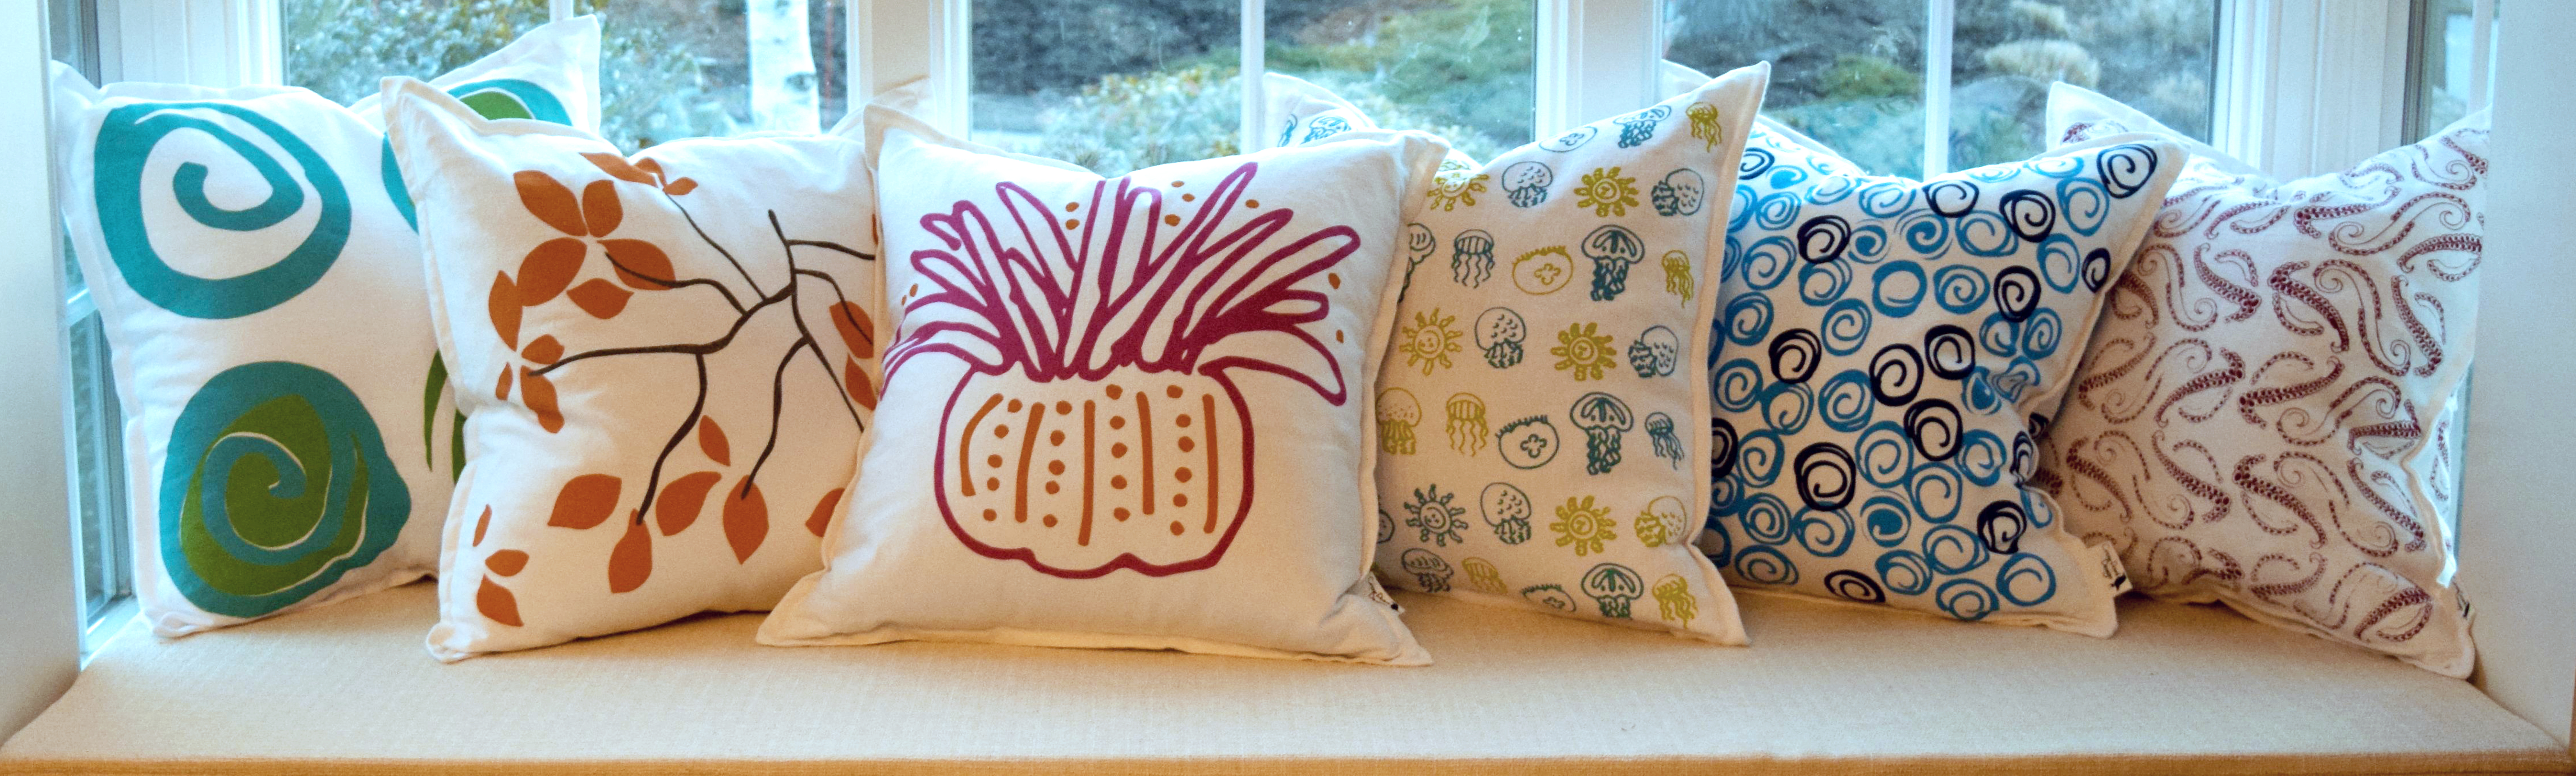 pillows.windowbench3